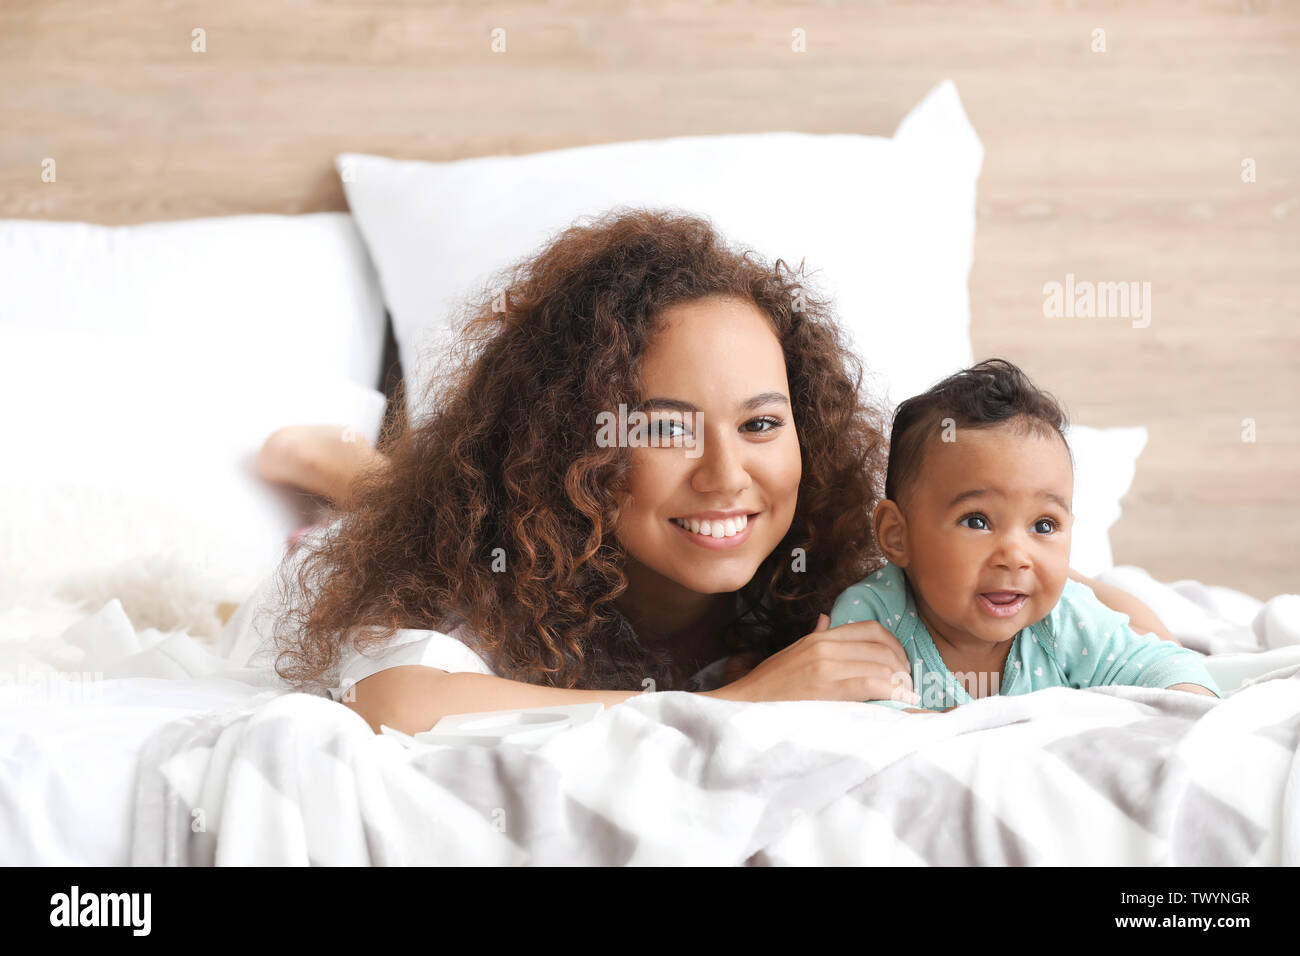 Happy African-American mother with cute little baby in bedroom - Stock Image